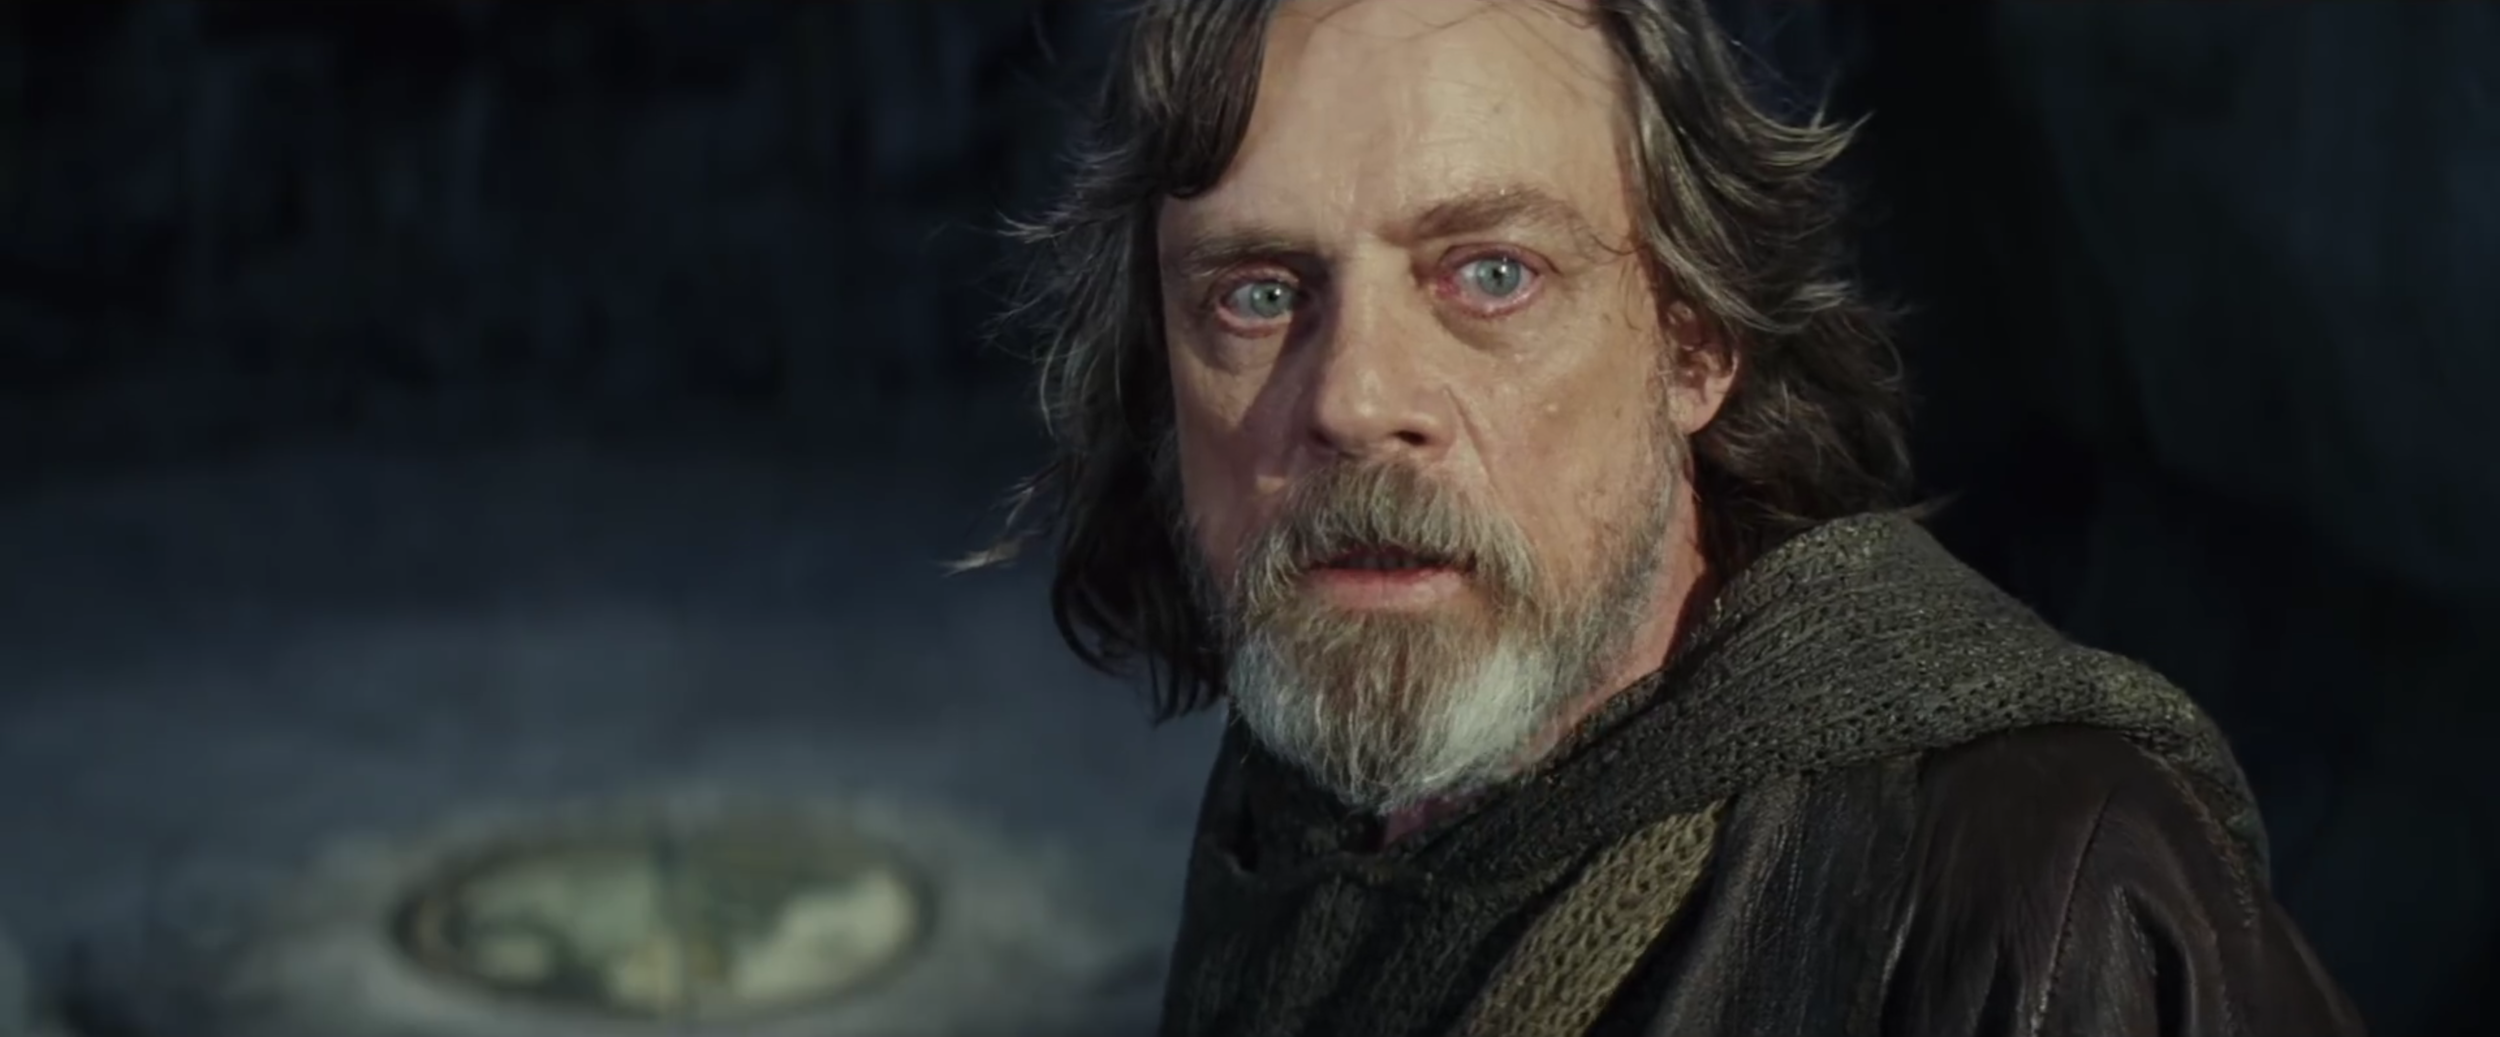 """As writer and director, Johnson attempts something in """"The Last Jedi"""" that both J.J. Abrams and Gareth Edwards were afraid to do: he tries something new and original. (Screenshot via YouTube)"""